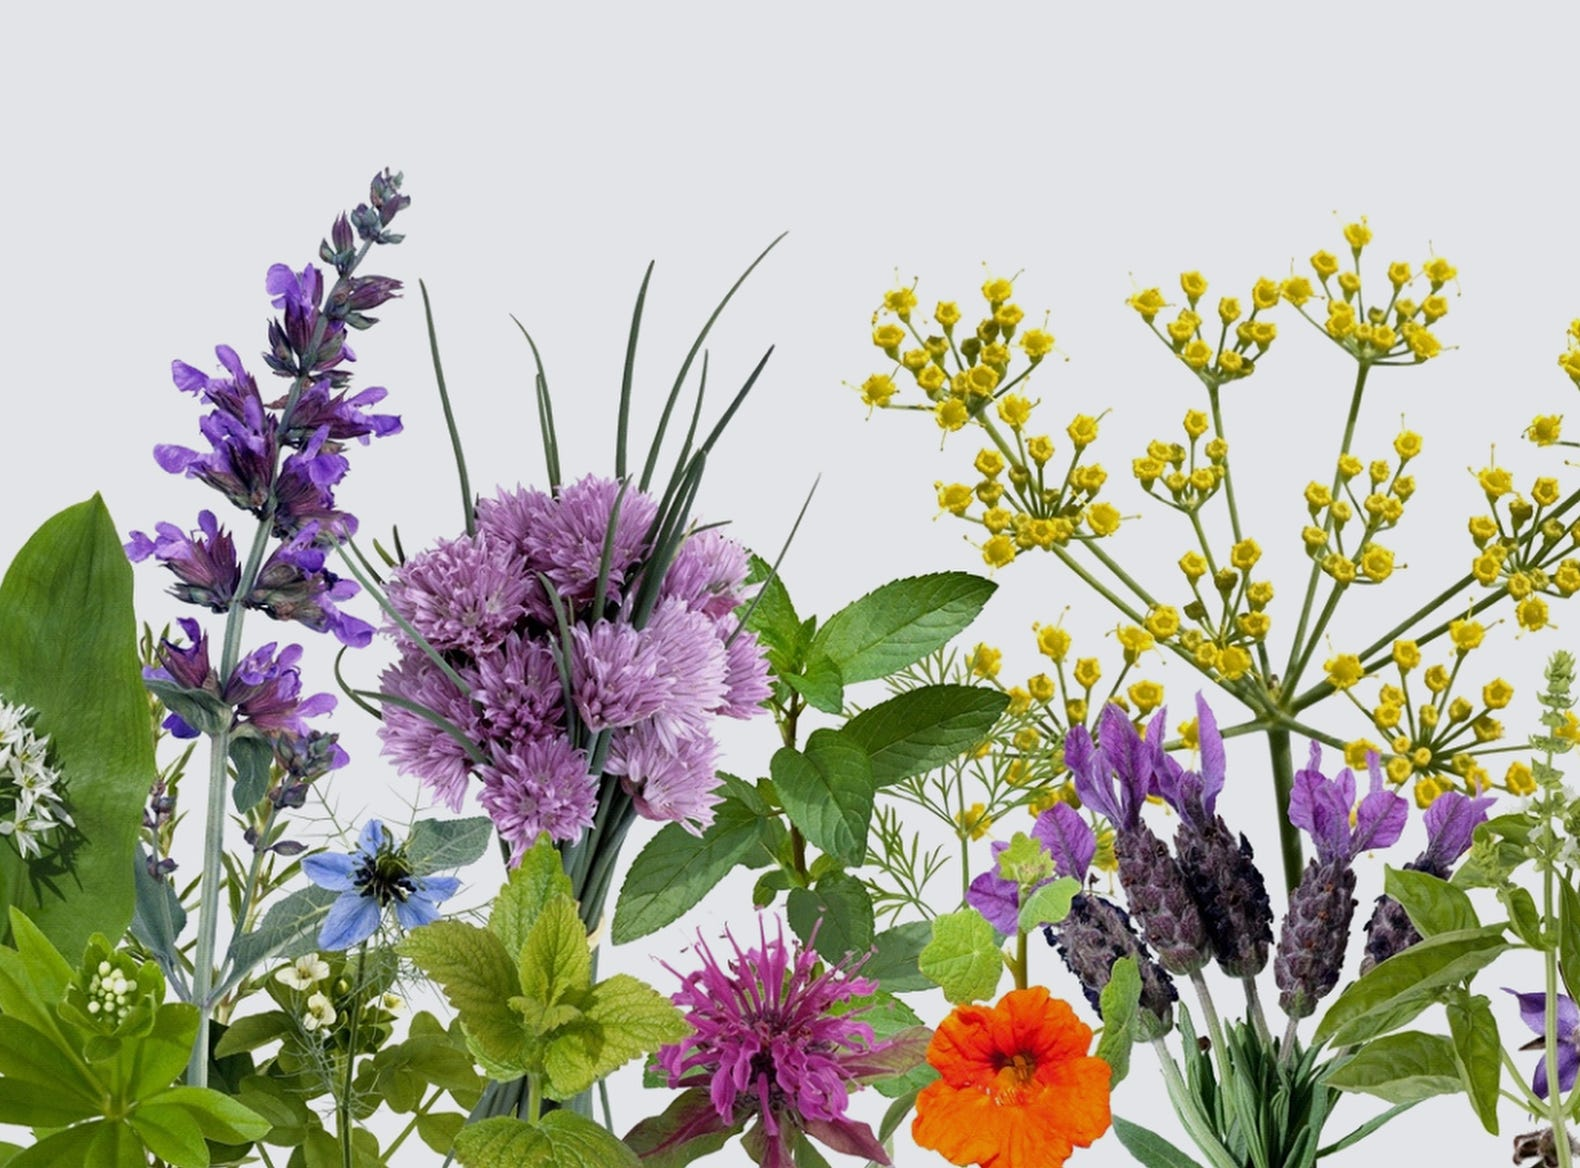 April 13 HERB AND PLANT SALE: 9 a.m.-2 p.m. Tennessee State Fairgrounds Sports Arena. $5 parking, herbsocietynashville.org